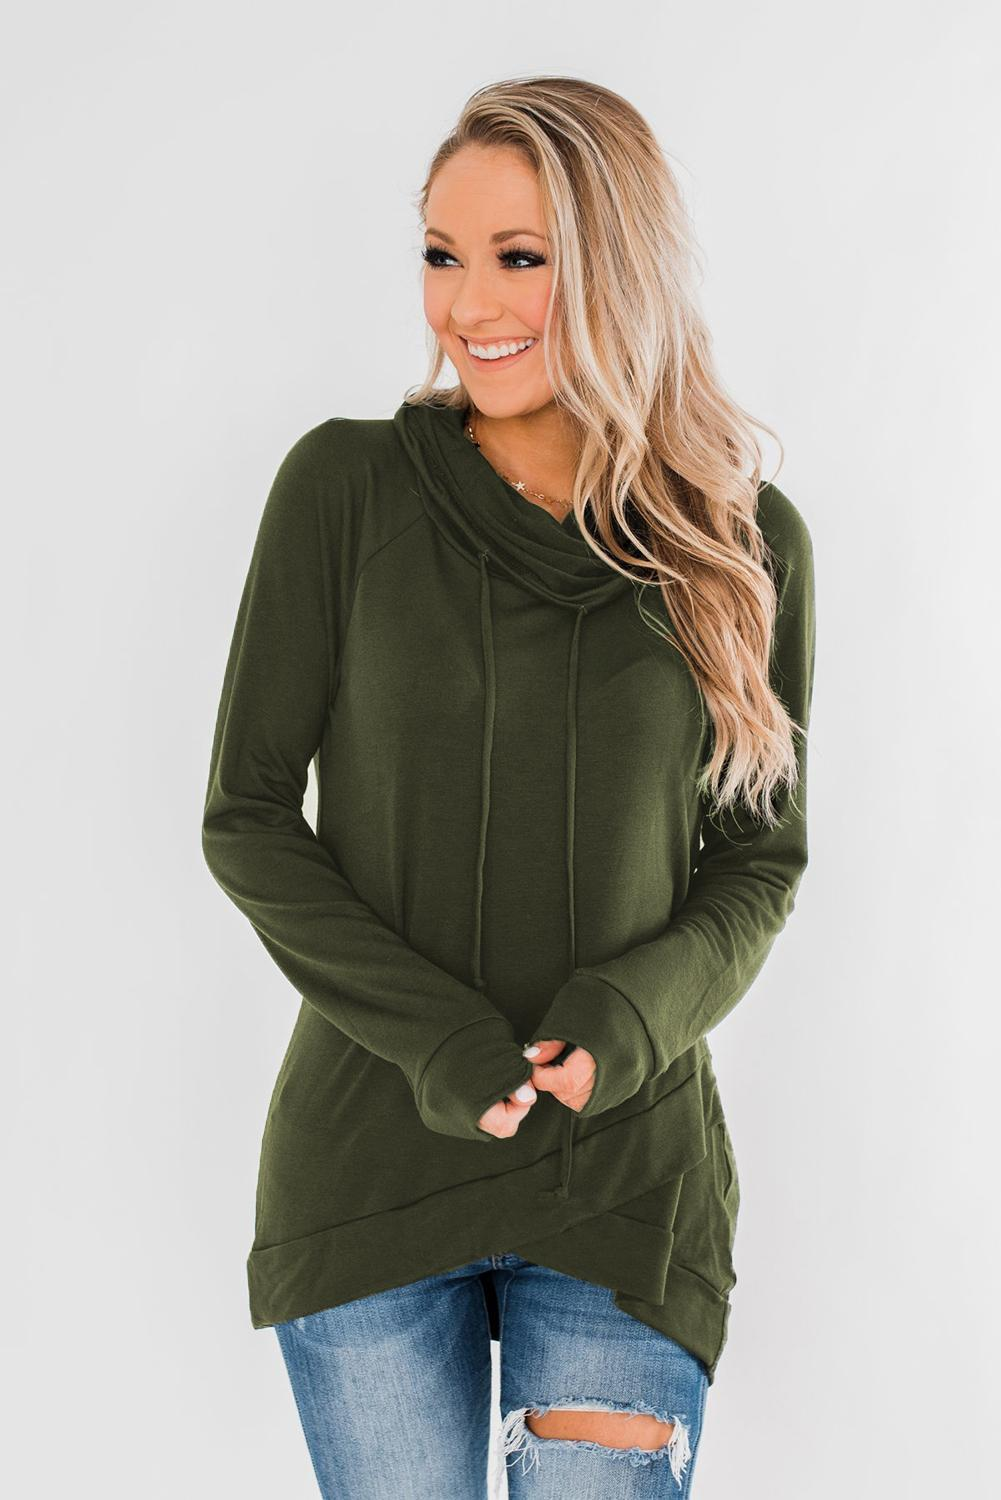 KaleaBoutique Stylish Green Casual Cowl-Neck Pullover Sweatshirt - KaleaBoutique.com